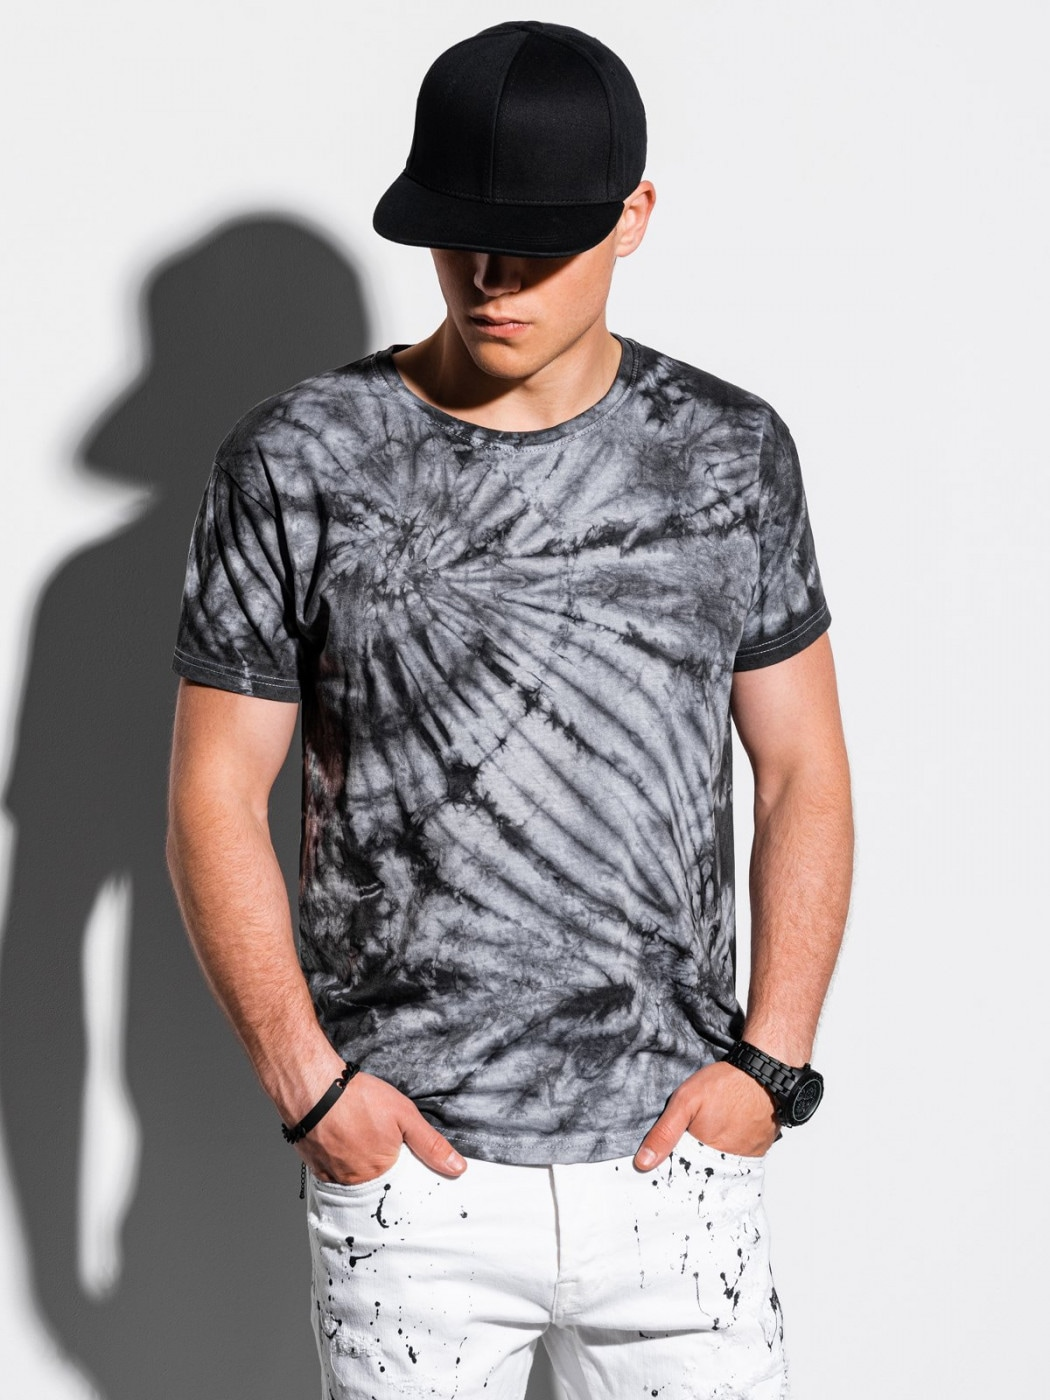 Ombre Clothing Men's printed t-shirt S1333